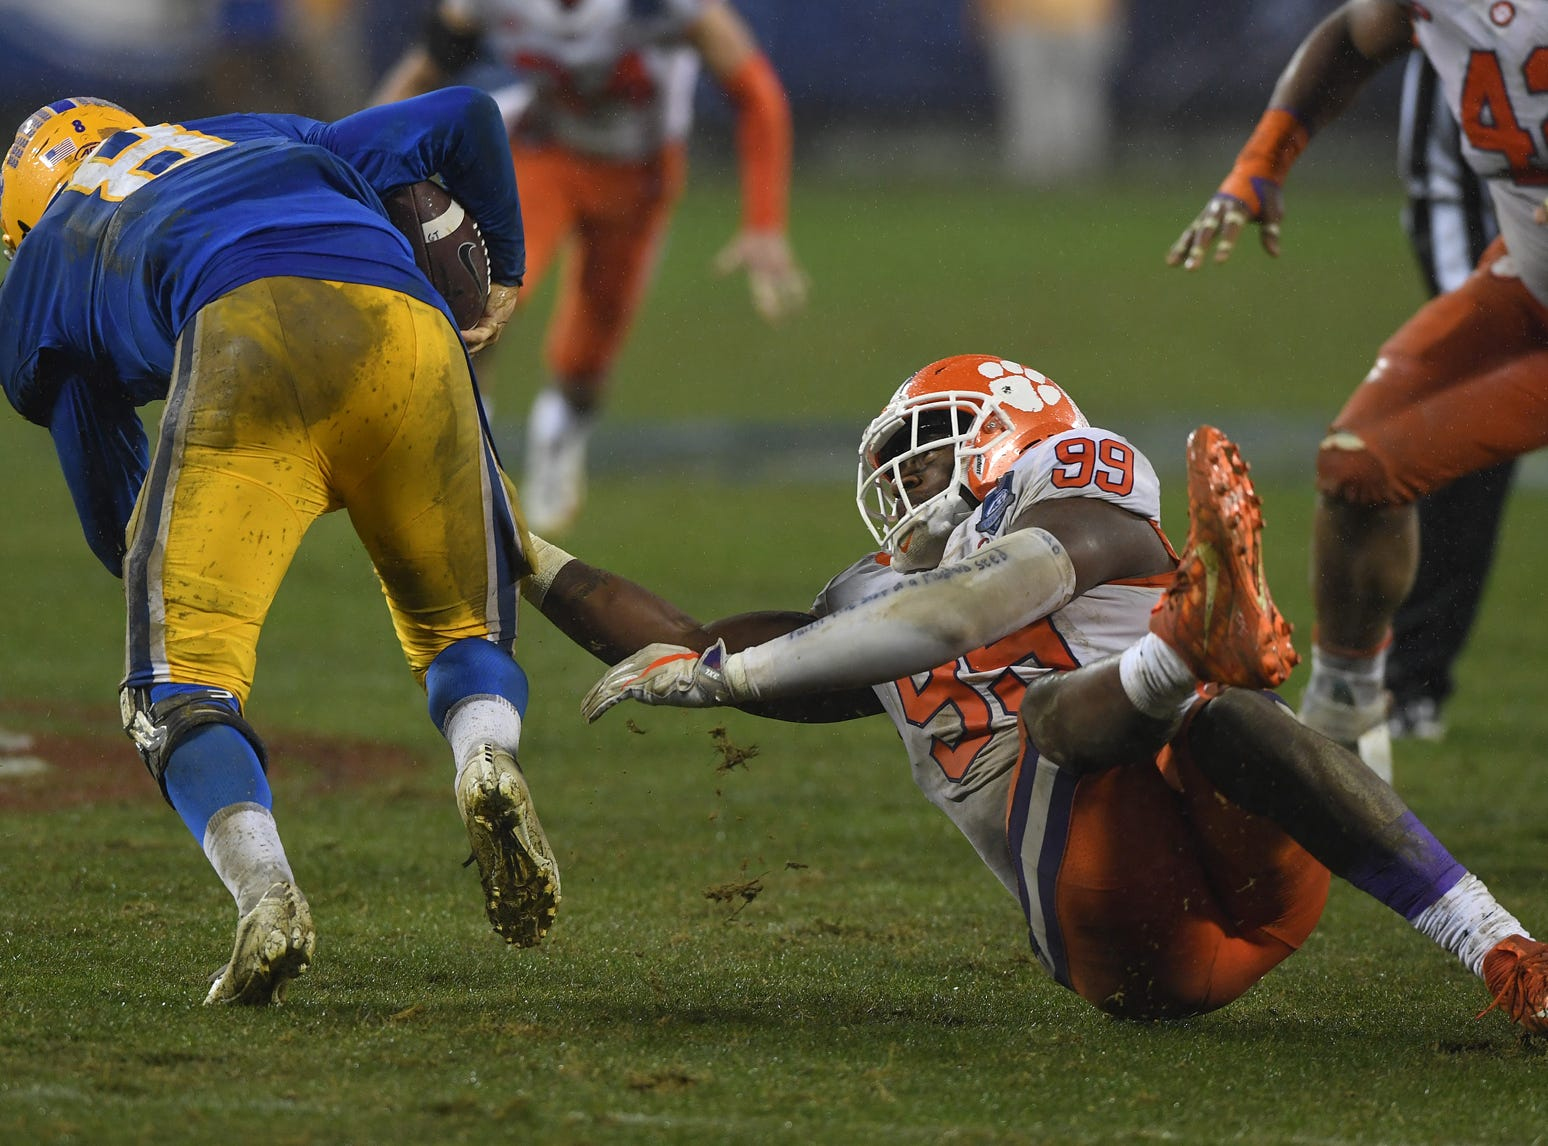 Clemson defensive lineman Clelin Ferrell (99) brings down Pittsburgh quarterback Kenny Pickett (8) during the 2nd quarter of the Dr. Pepper ACC Championship at Bank of America Stadium in Charlotte, N.C. Saturday, December 1, 2018.